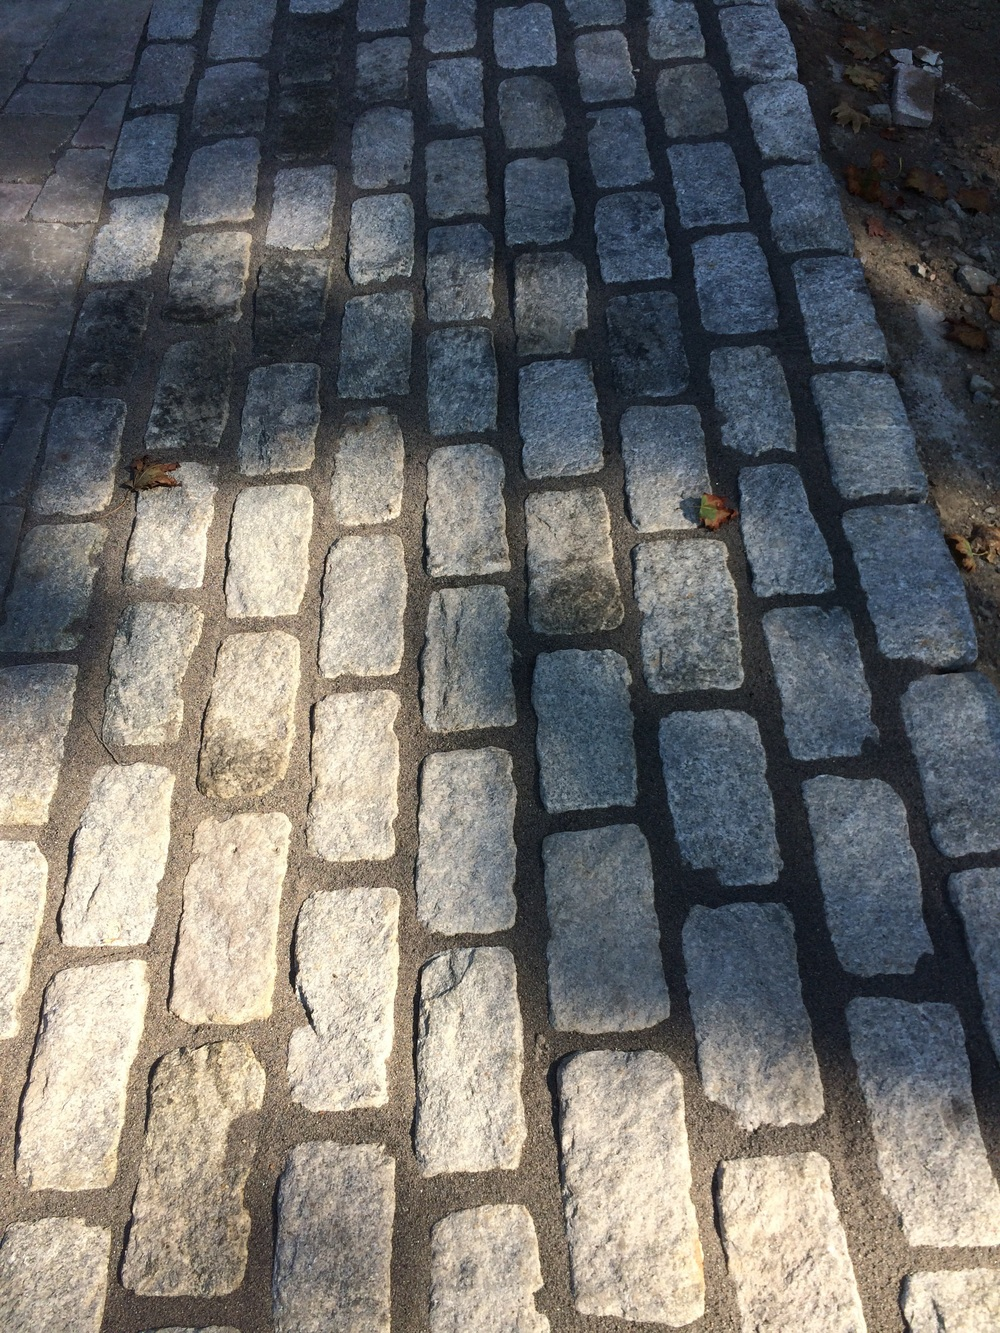 Polymetric sand was used on a Belgium block apron in Wilton CT and can be used on othermasonary accents like flagstone walkways.